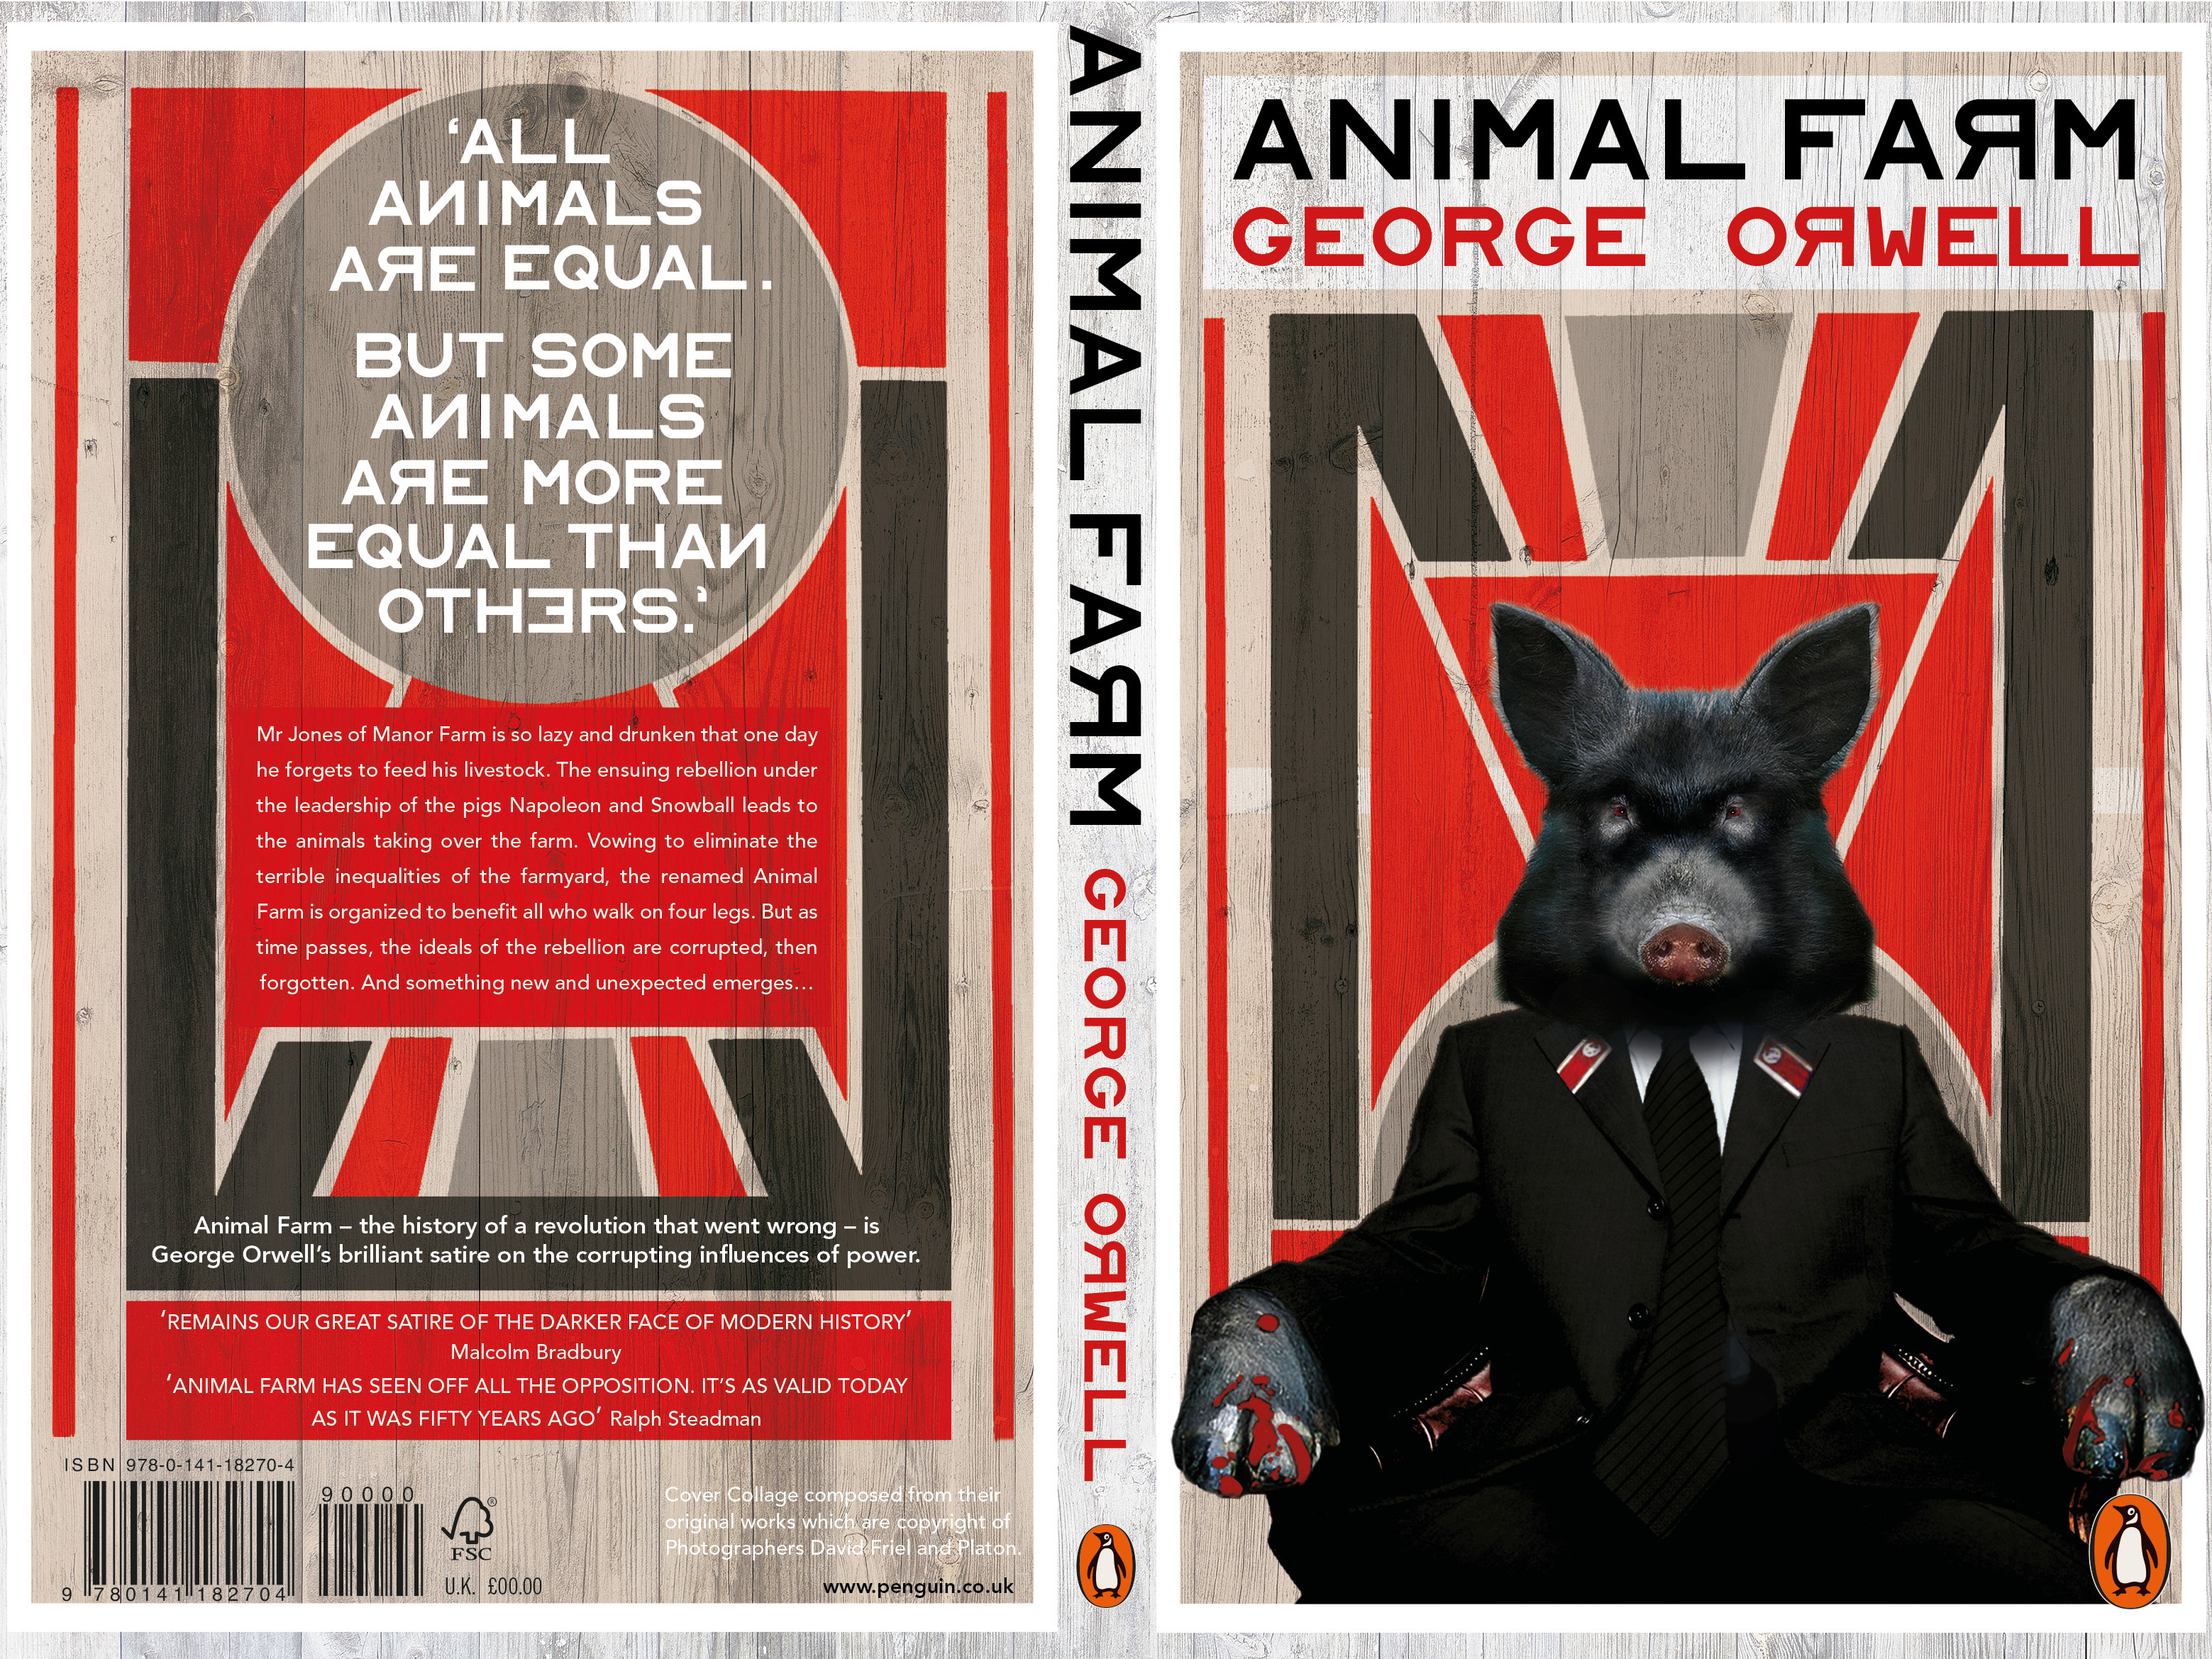 Simon Breese Animal Farm Book Cover Design